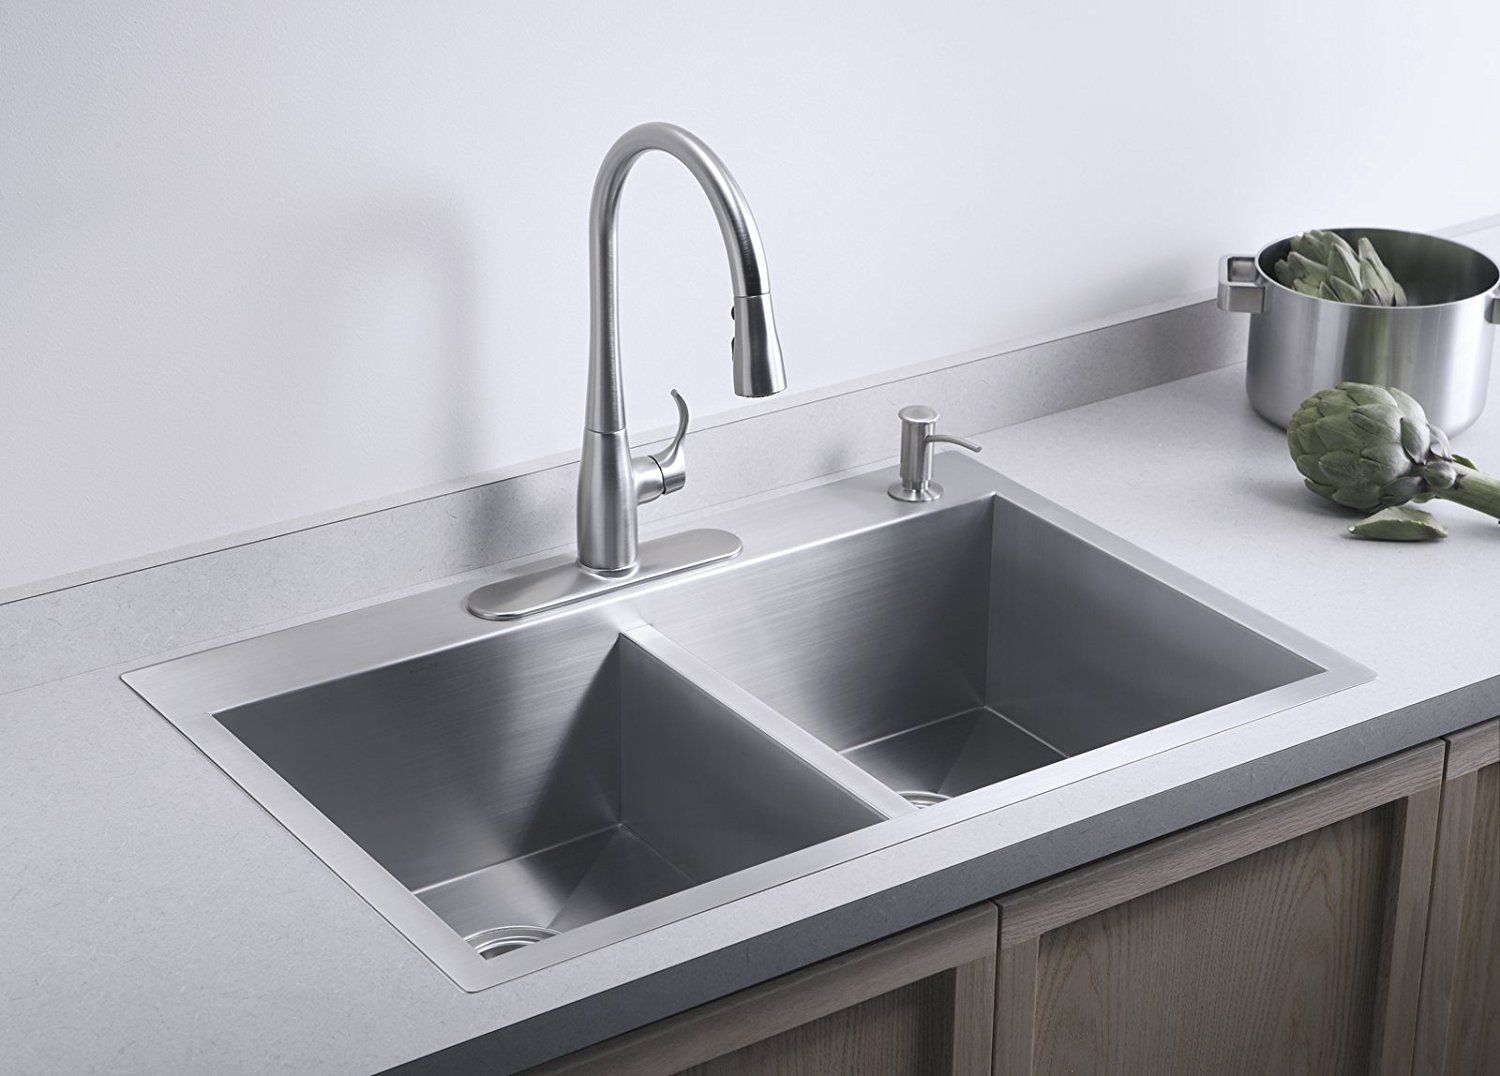 Kohler K-3820-4-NA Double Basin Kitchen Sink with Four-Hole Faucet ...